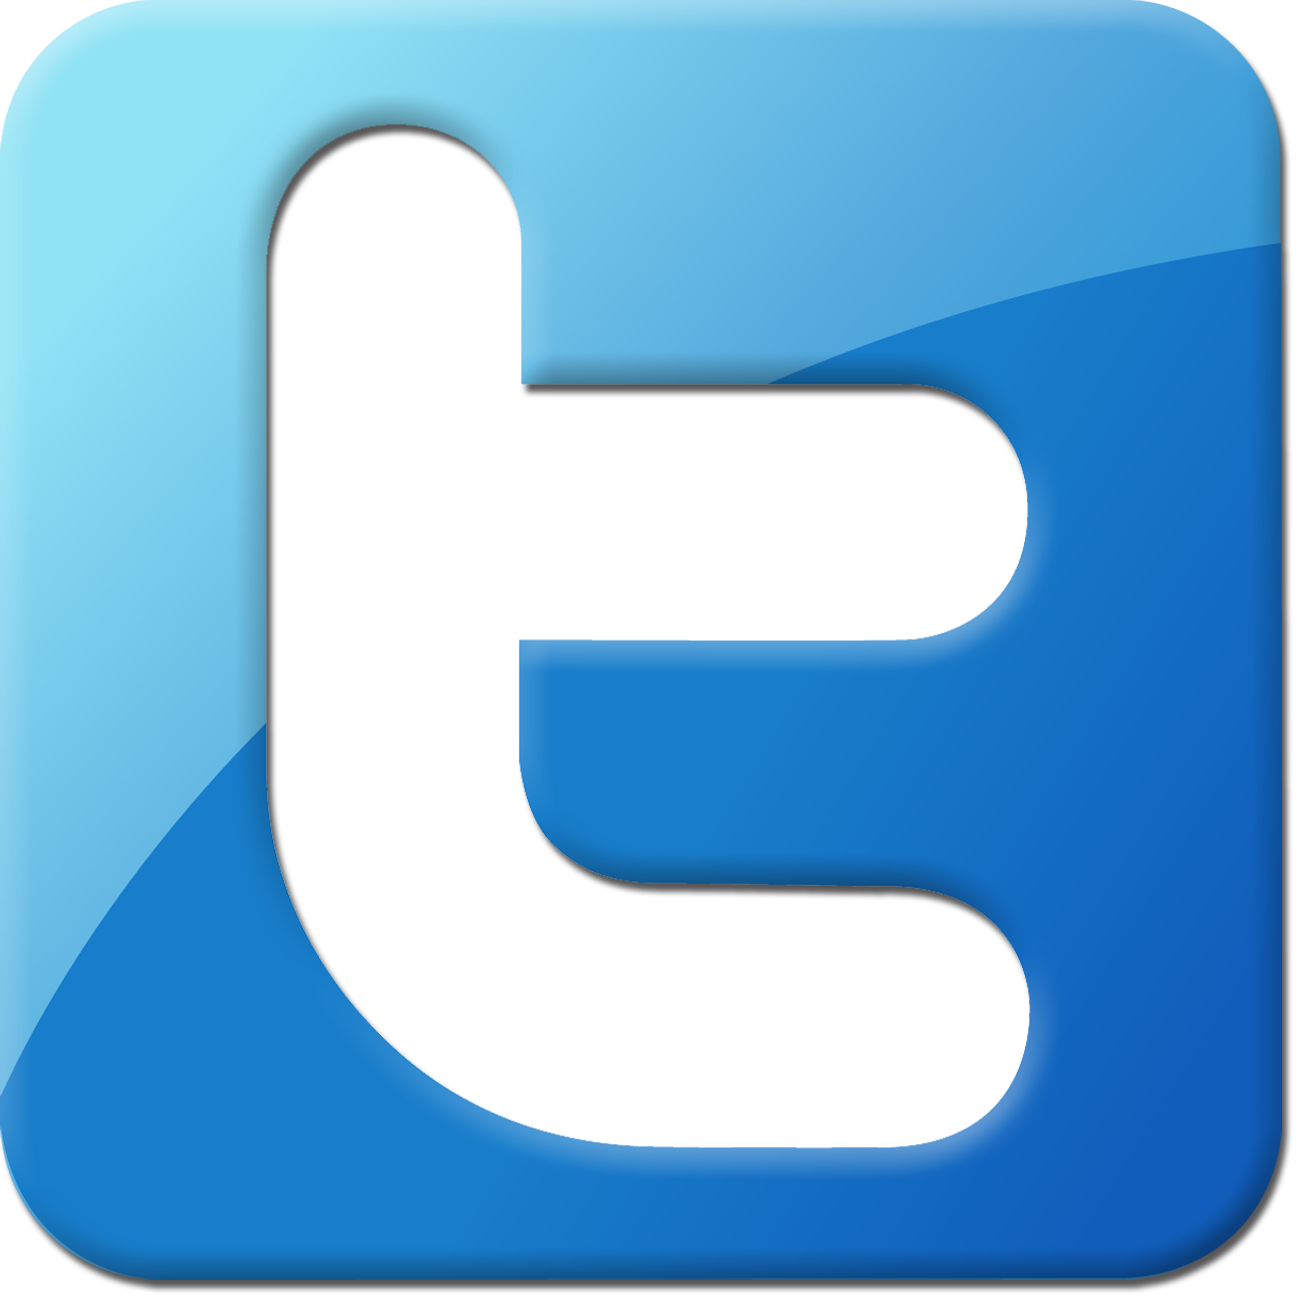 Twitter Instagram Logo Transparent